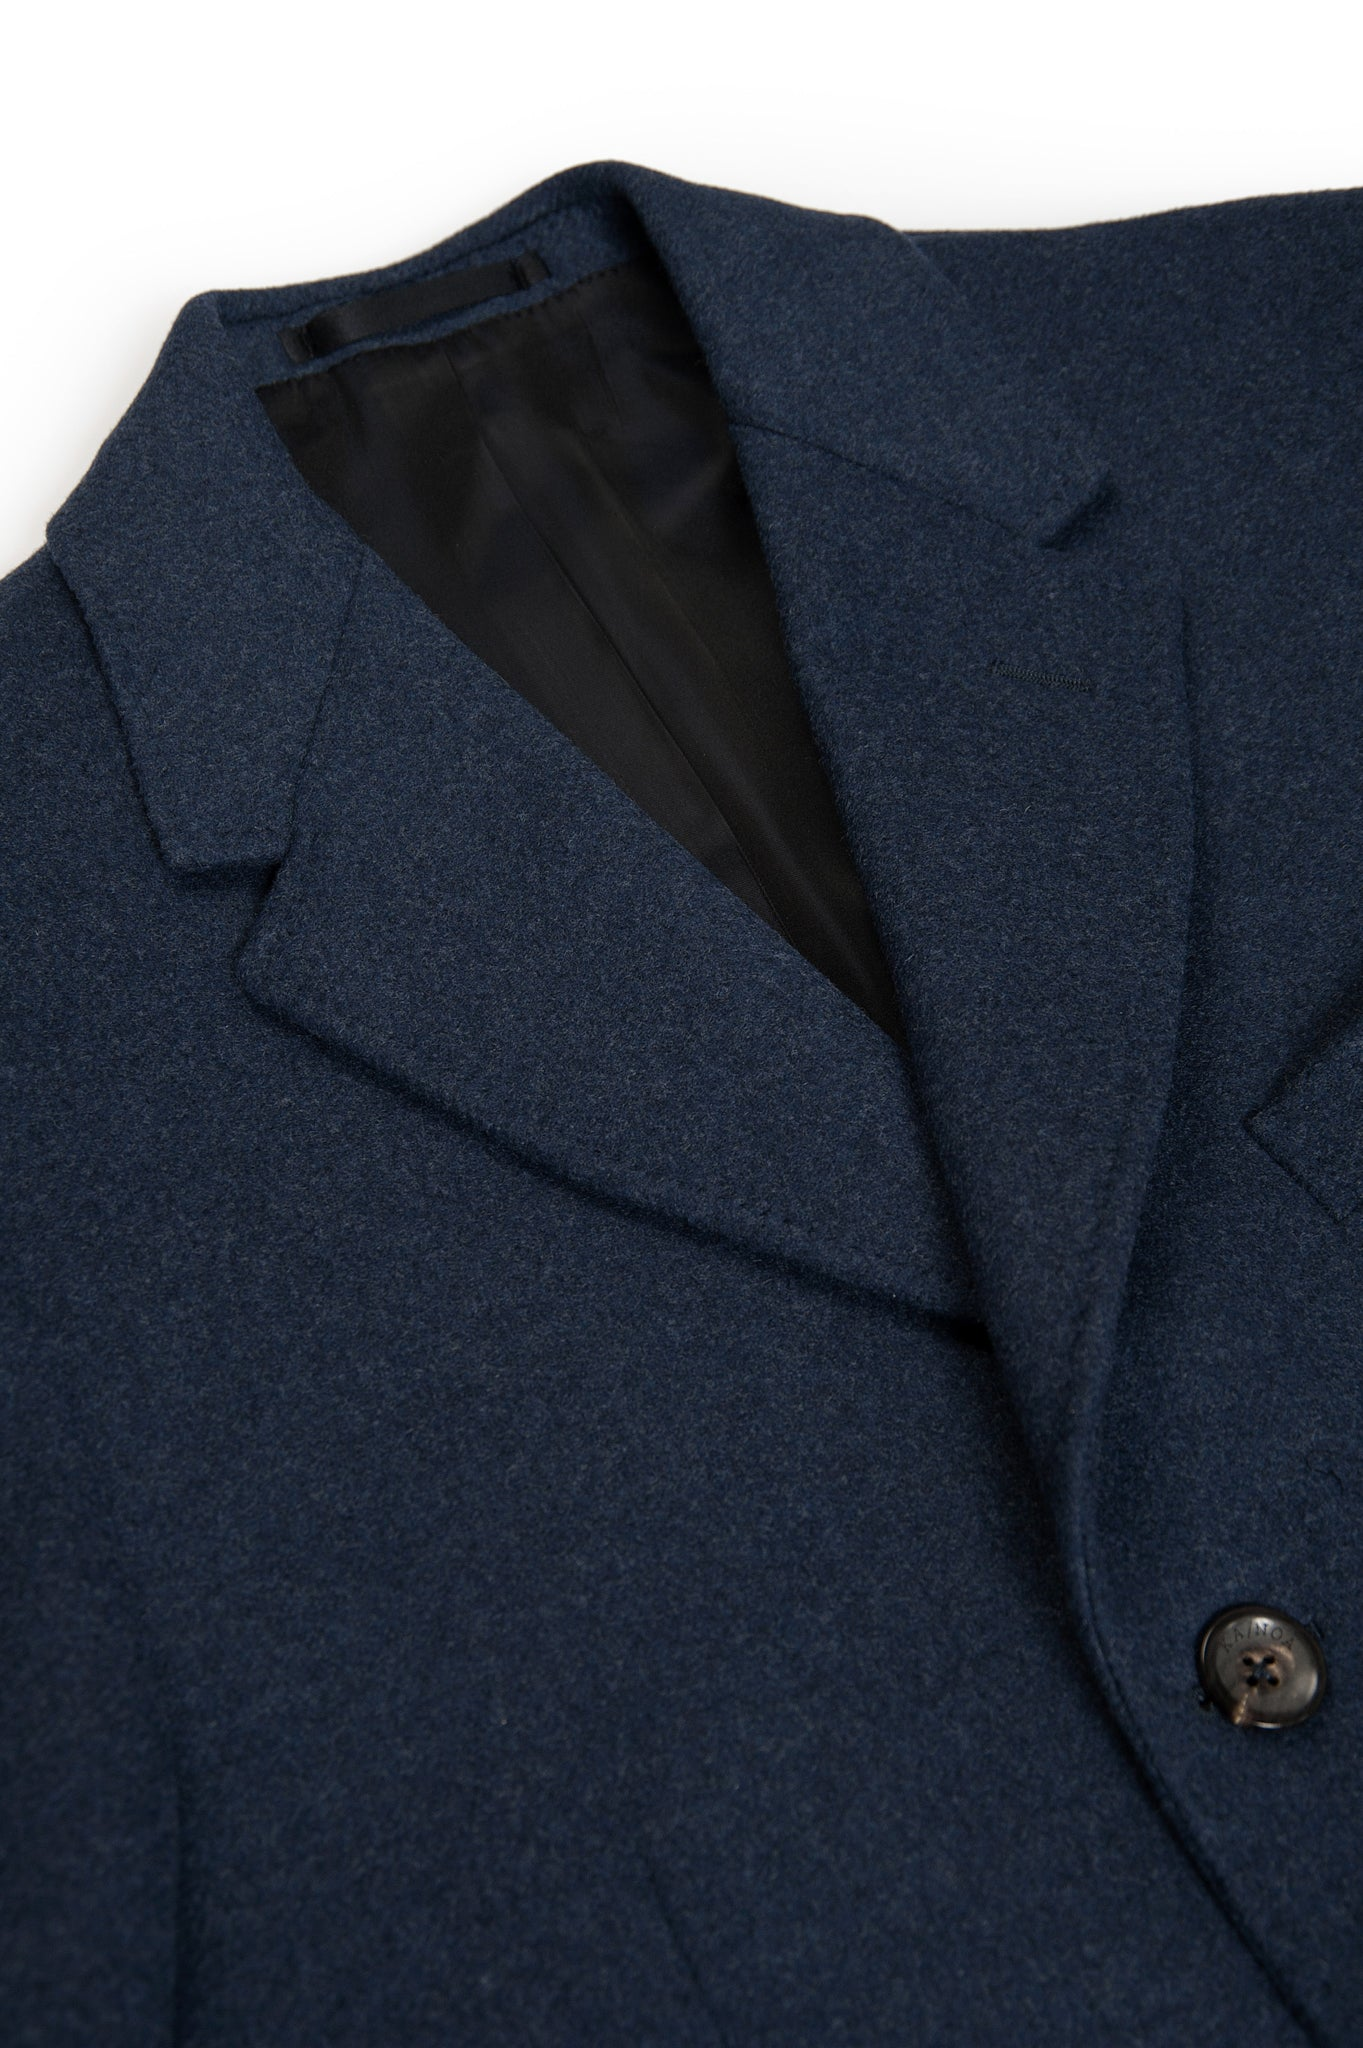 Pierre Coat Wool and Cashmere (dark blue)